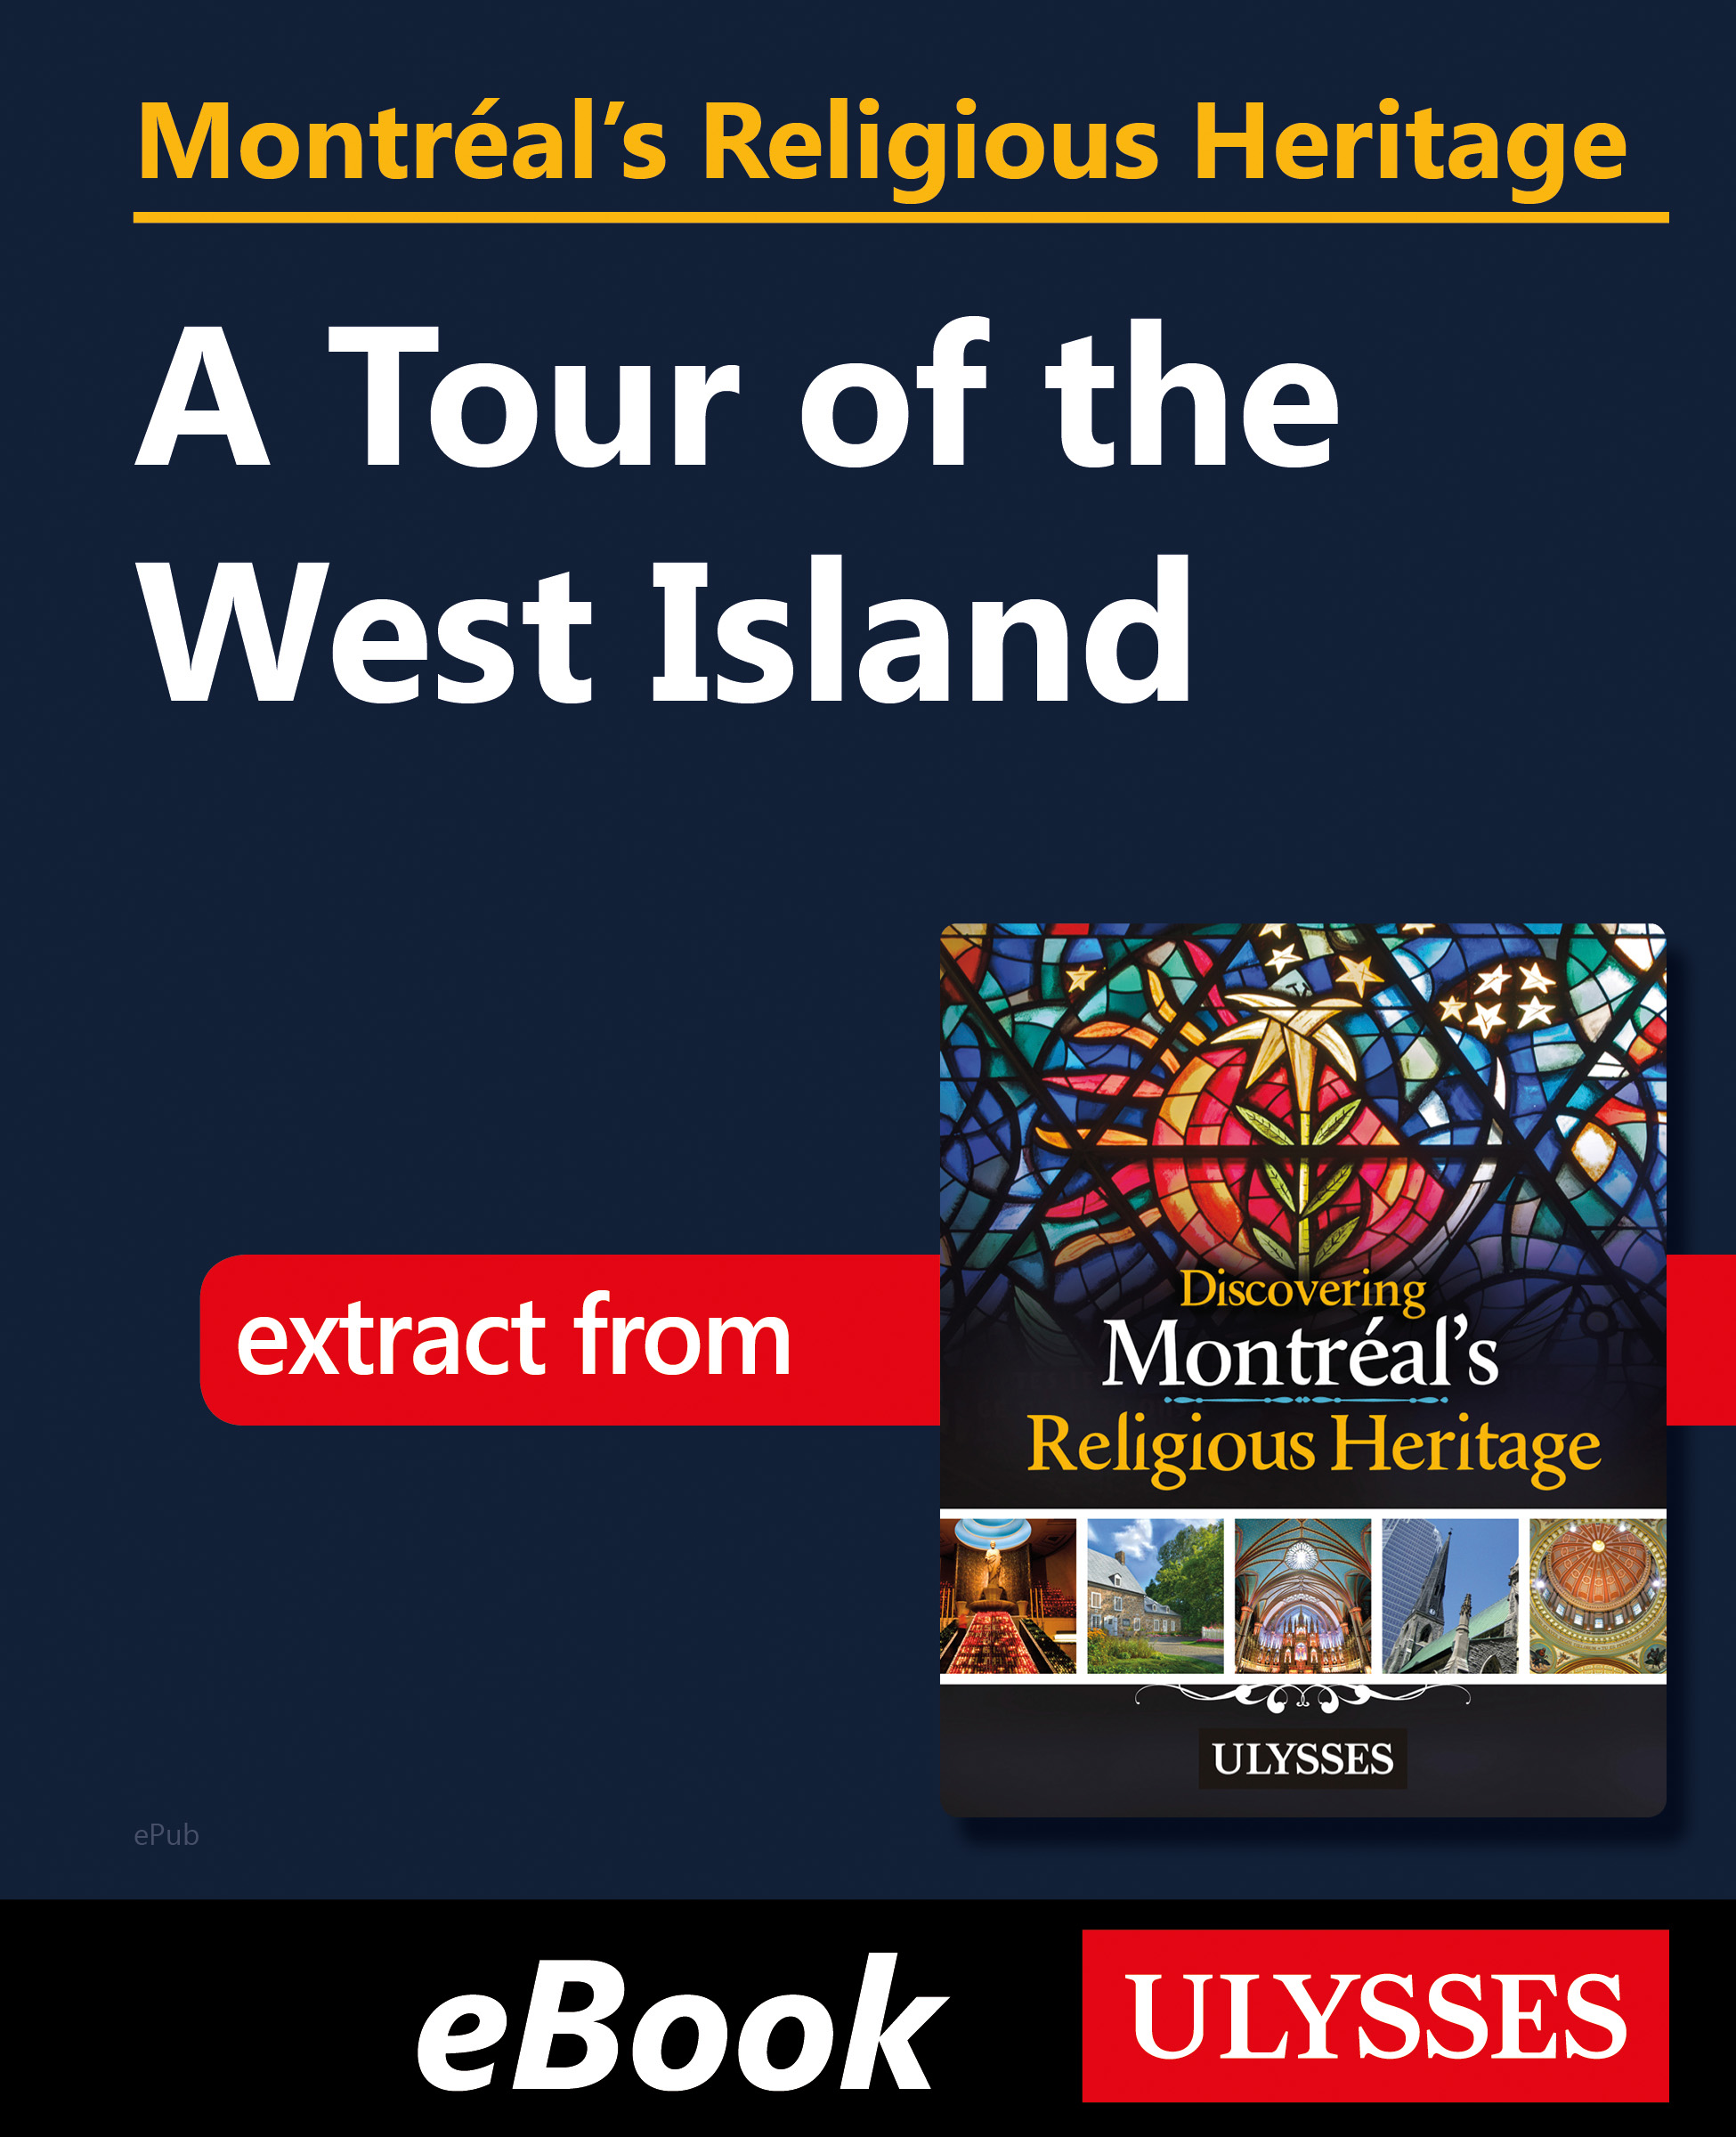 Montréal's Religious Heritage: A Tour of the West Island